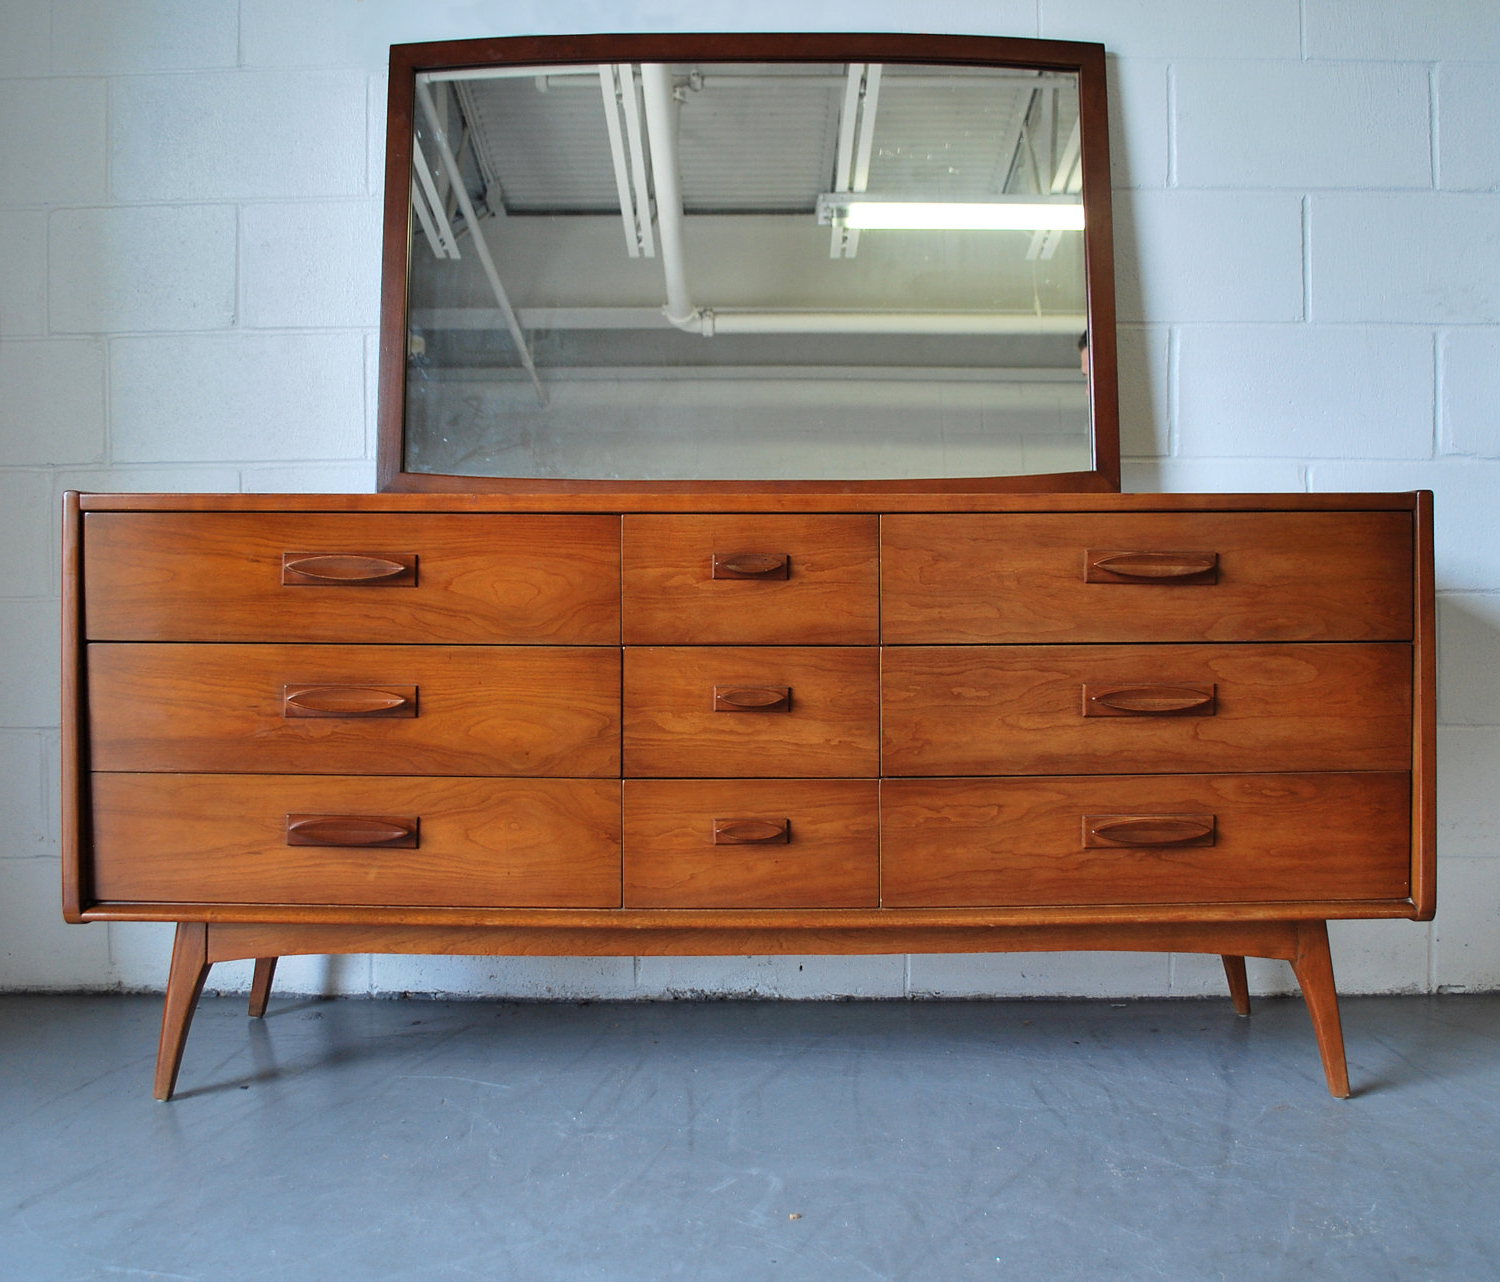 Elegant Small Wood Dresser In Danish Style Intended For Mid Century Modern Scandinavian Style Buffets (View 5 of 20)